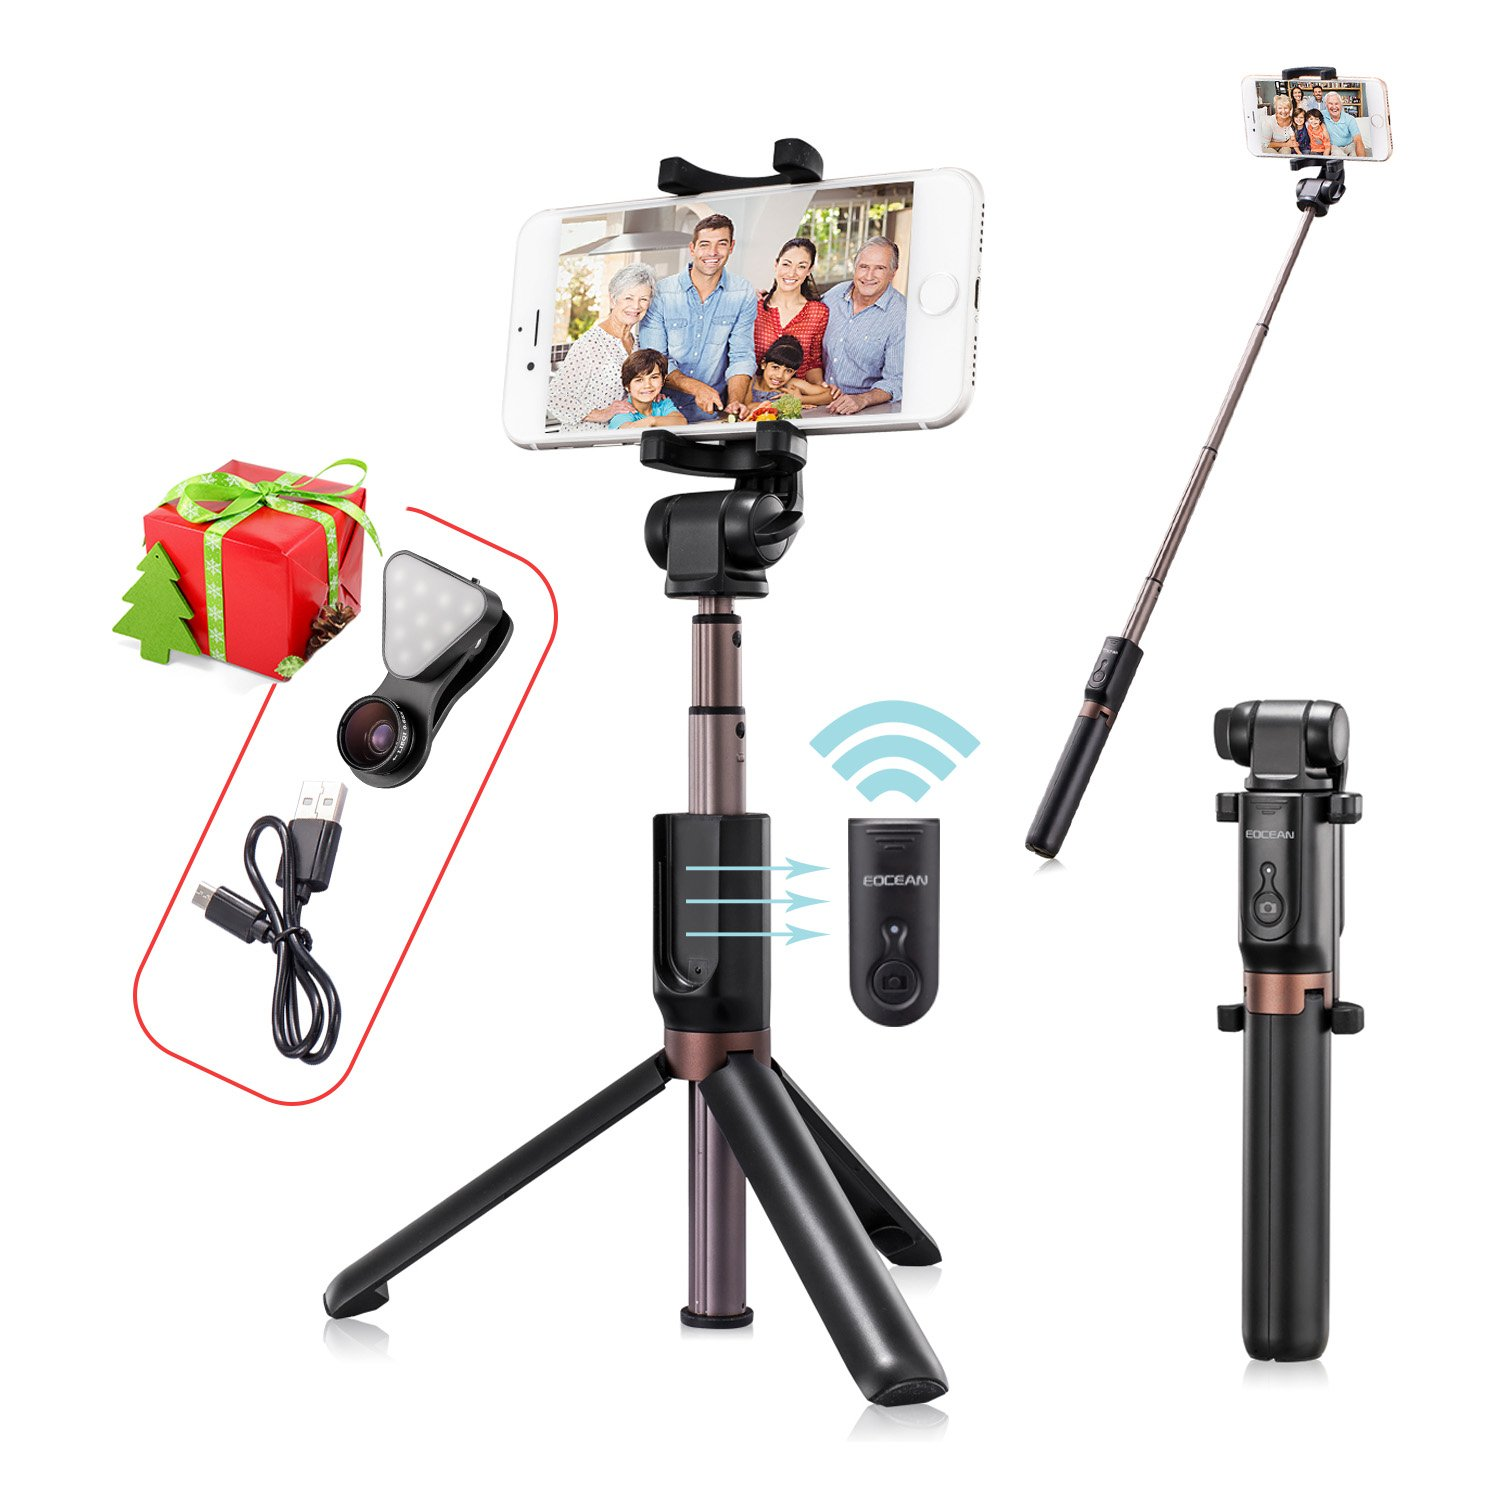 big sale eb28f 03b71 Amazon.com: Eocean Selfie Stick Tripod with Wireless Remote, Tripod ...